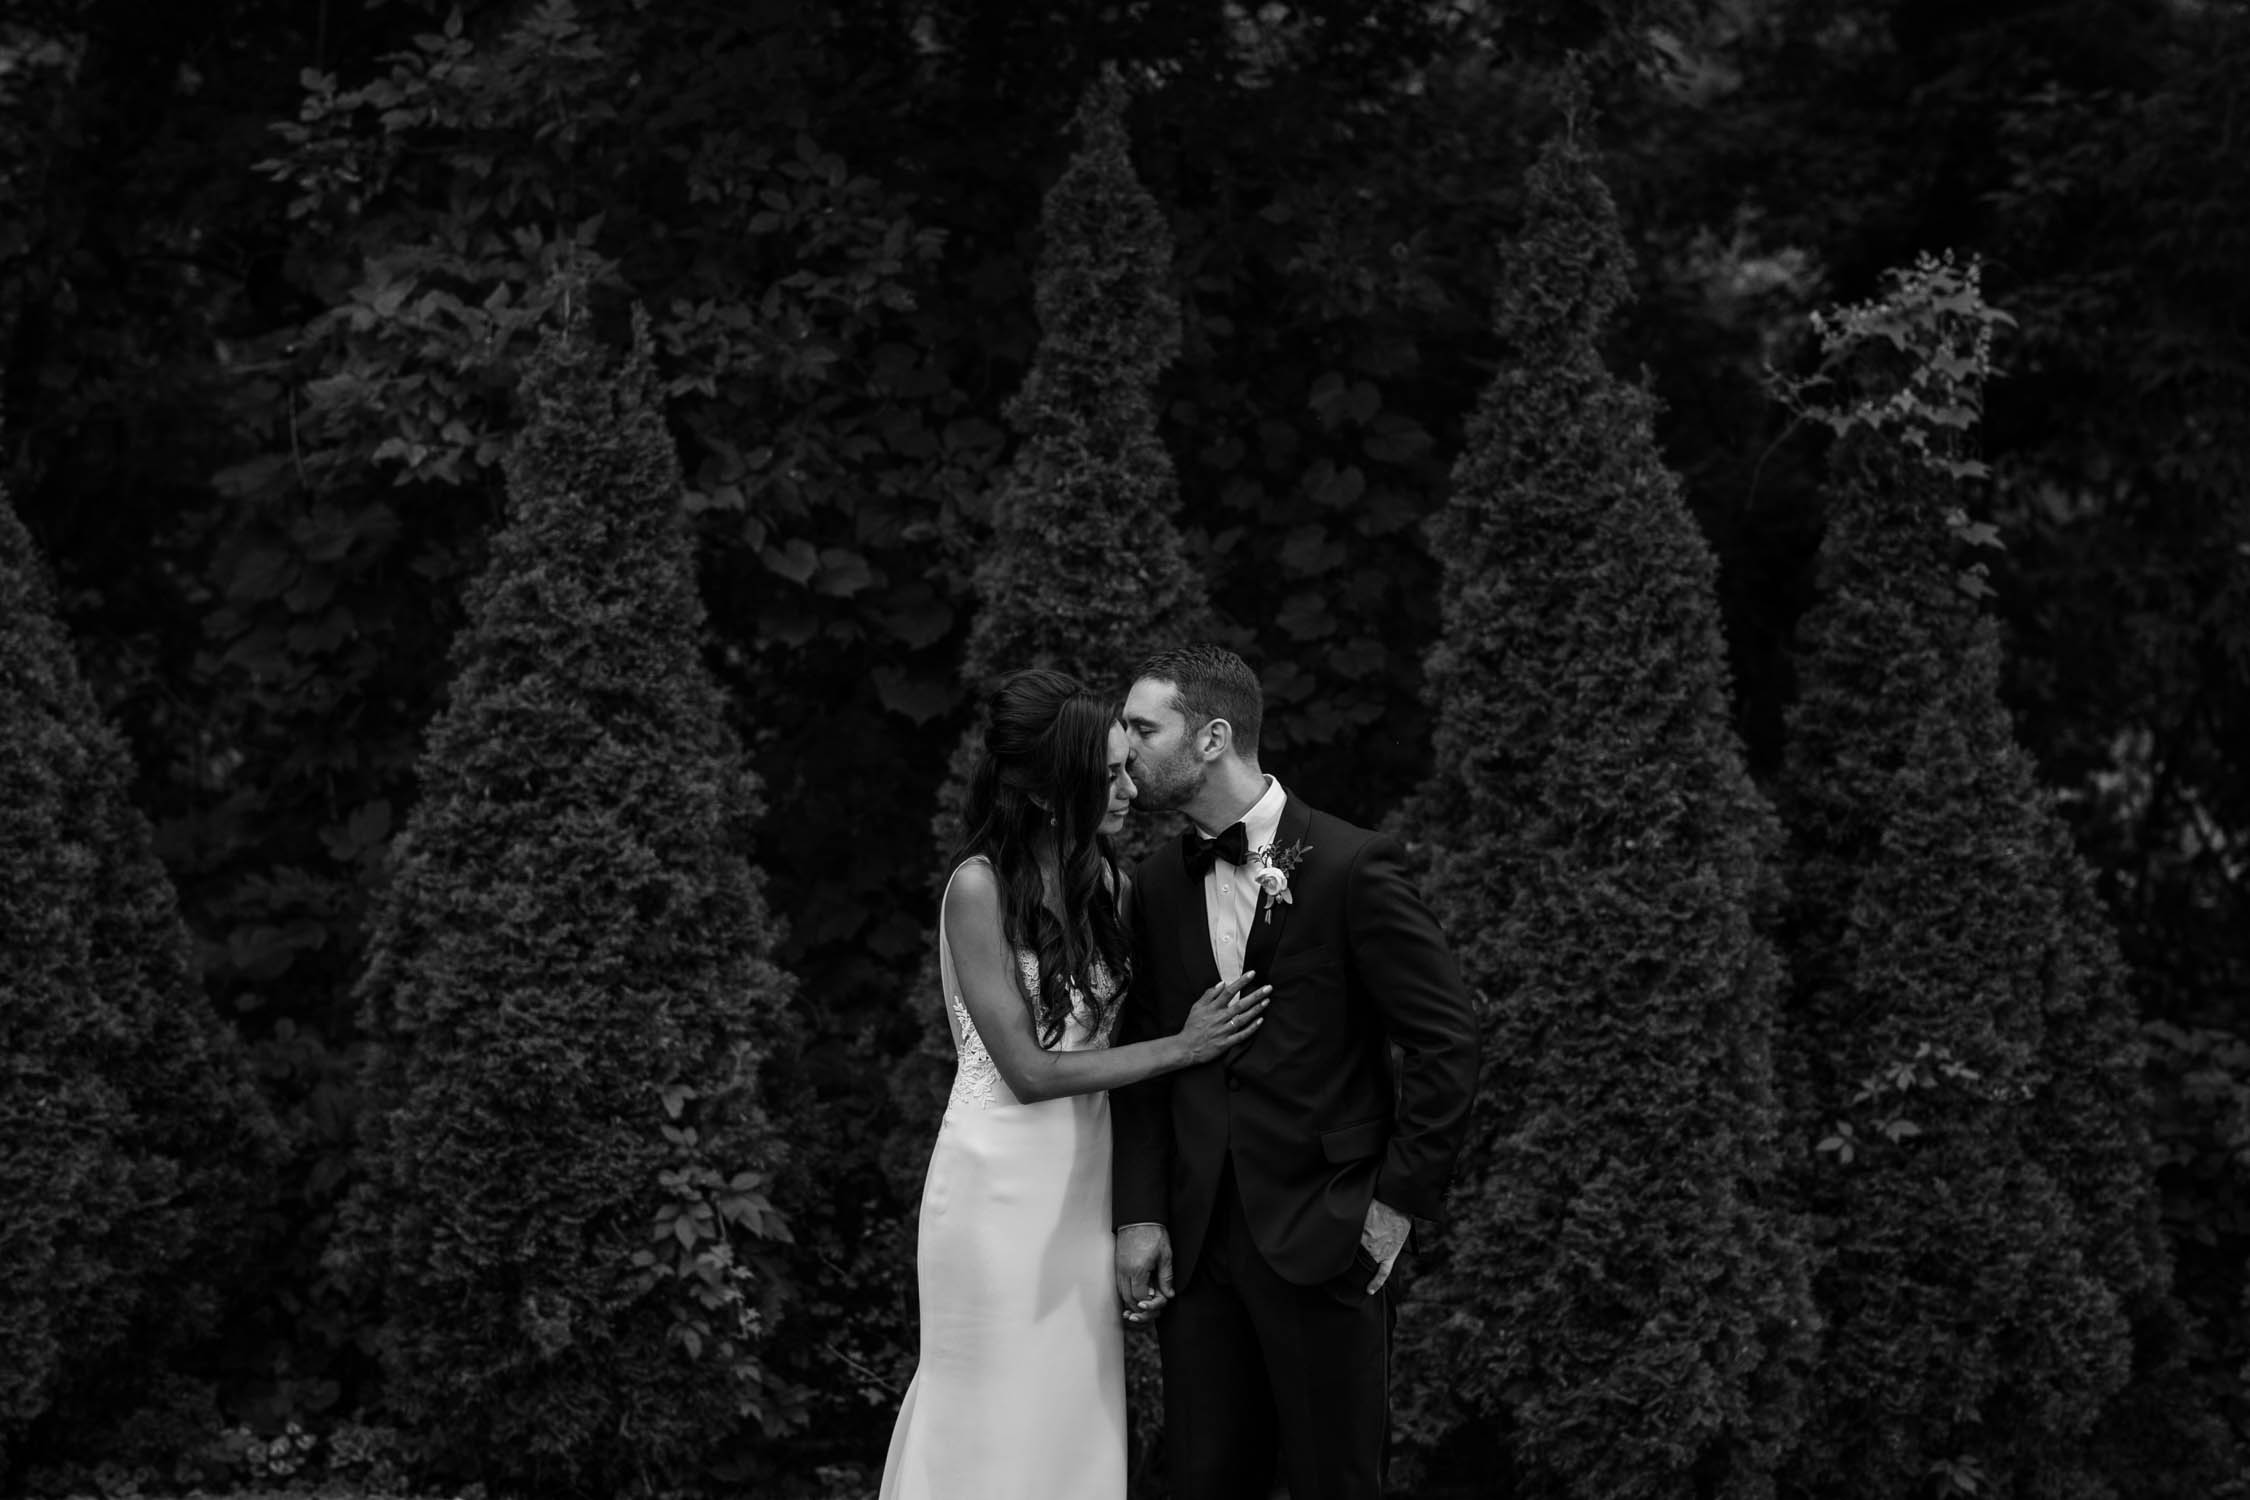 Award-winning Vancouver wedding photographer at Madsen's Greenhouse wedding venue in Newmarket close to Toronto